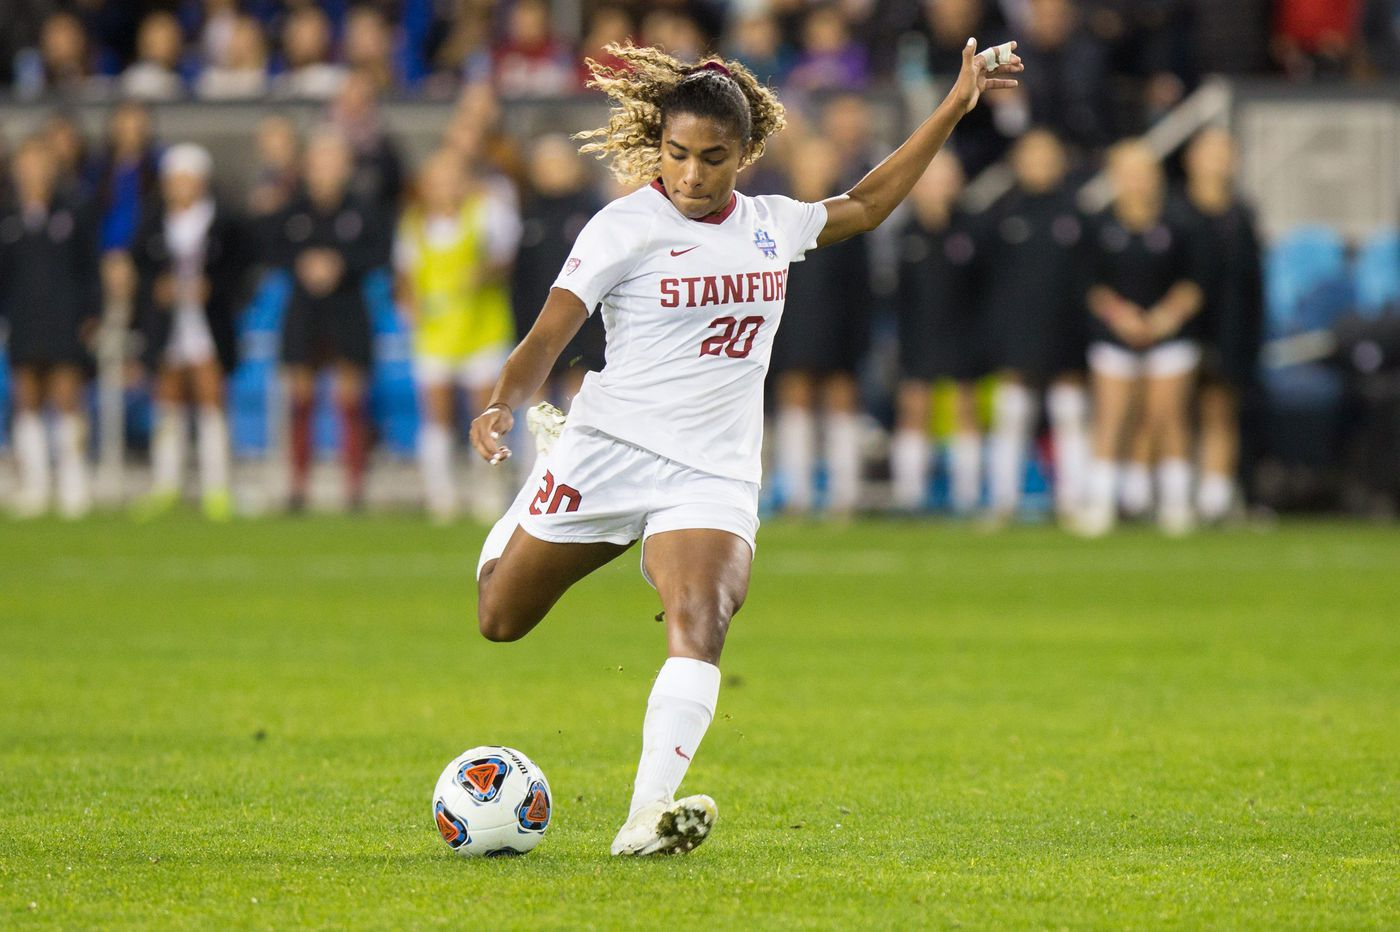 NWSL commissioner Lisa Baird faces heat over complex draft rules and Catarina Macario joining Lyon